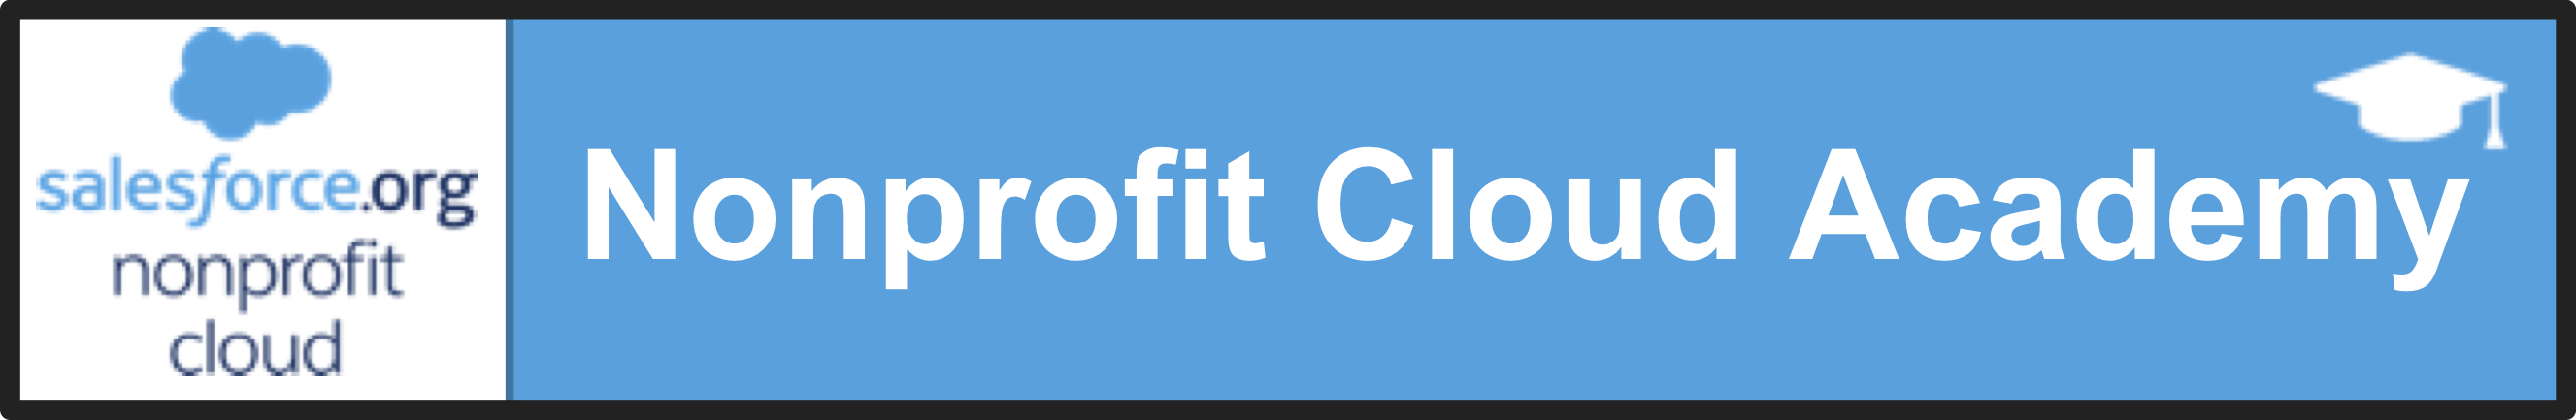 /s/NonprofitCloudAcademy_solobanner.png?v=1